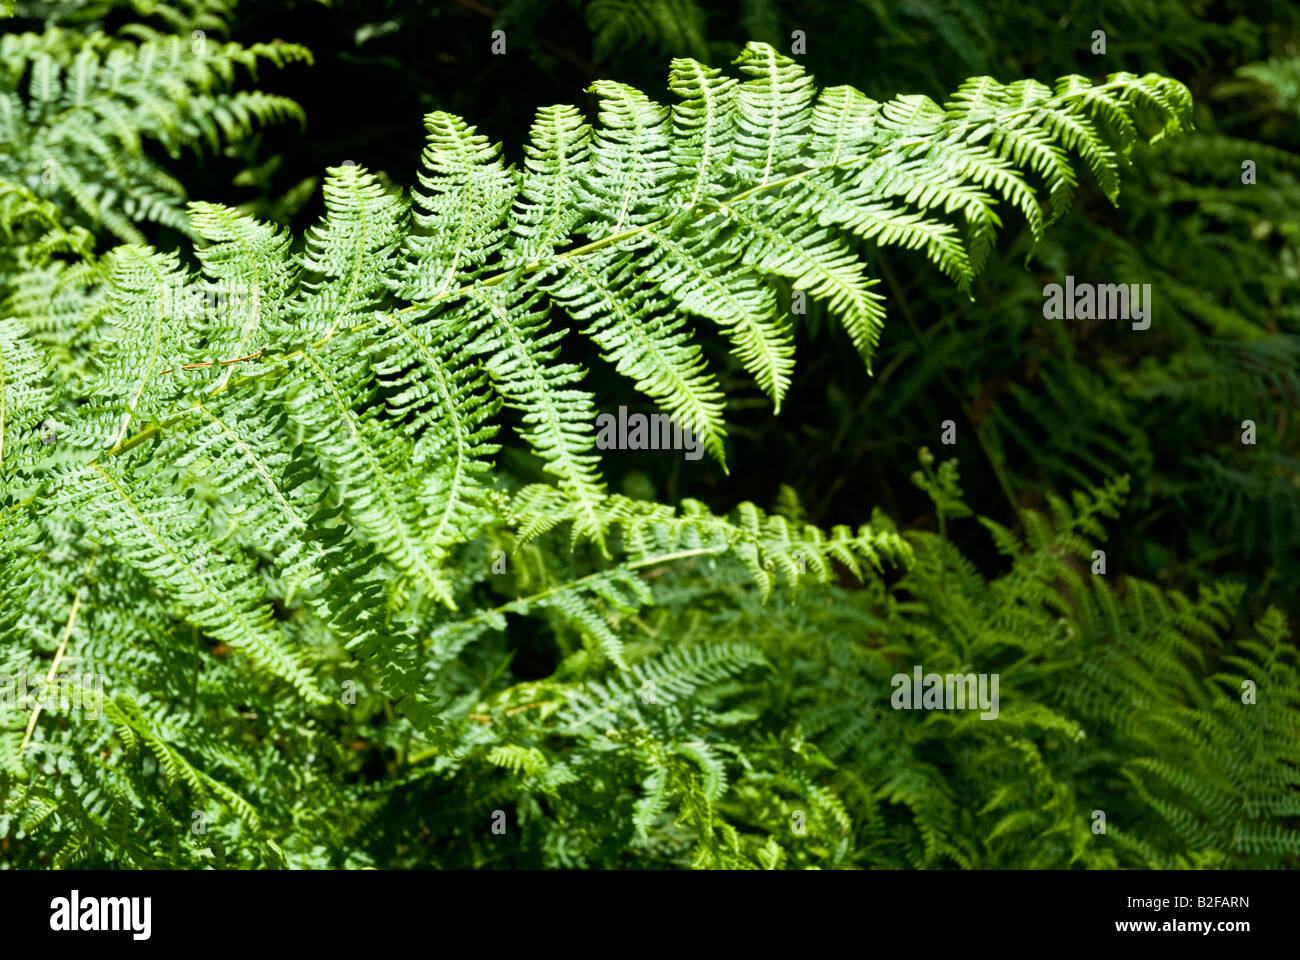 Ferns Bracken flora greenery - Stock Image